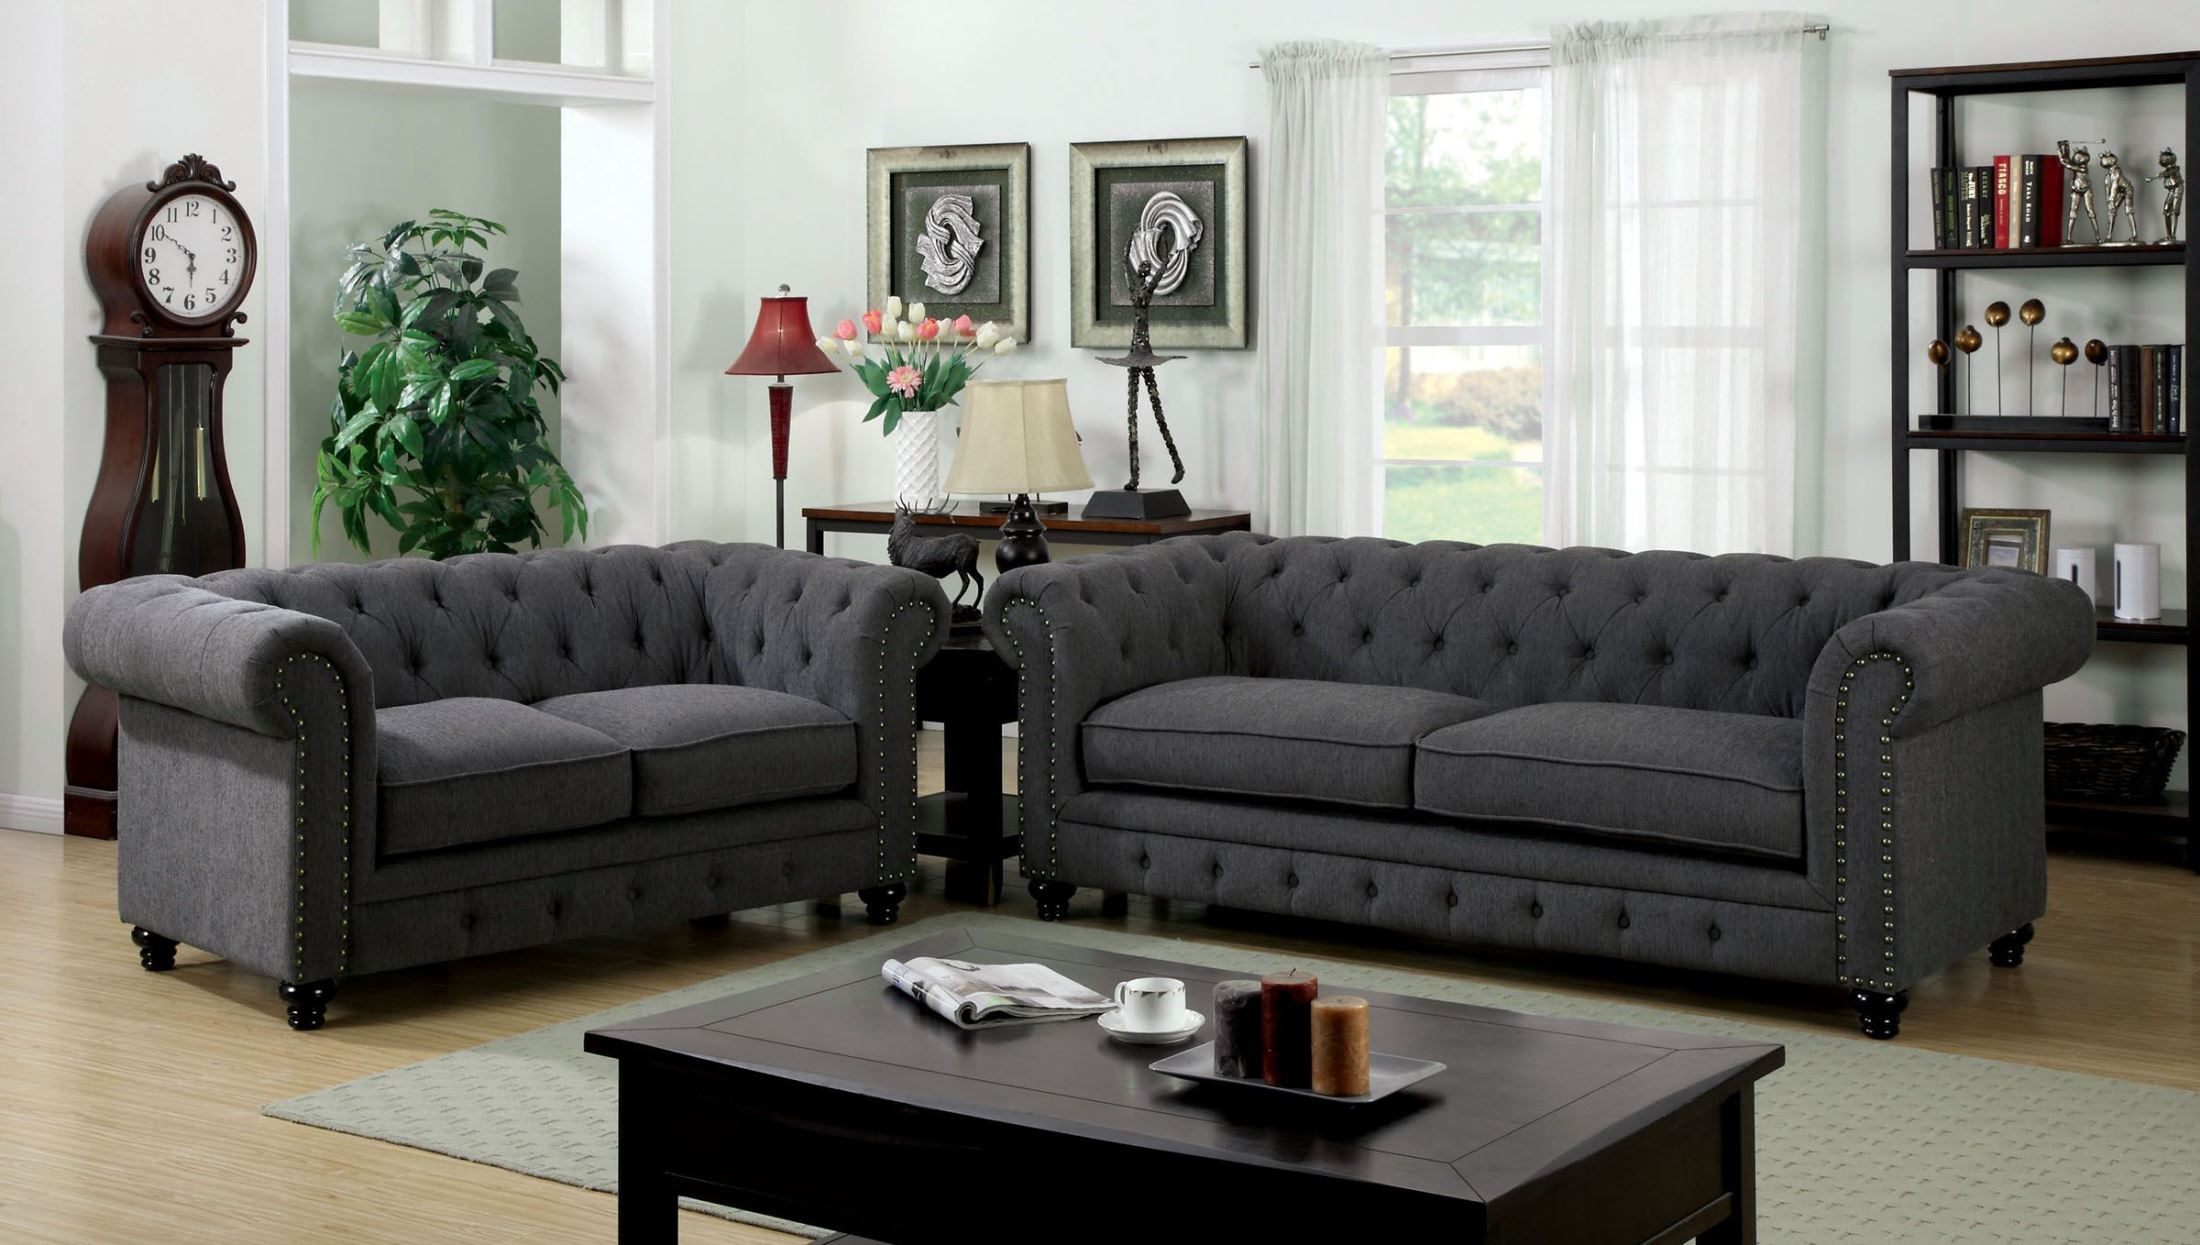 Barlow White Leather Sofa And Loveseat Set Stanford Gray Fabric Living Room Set